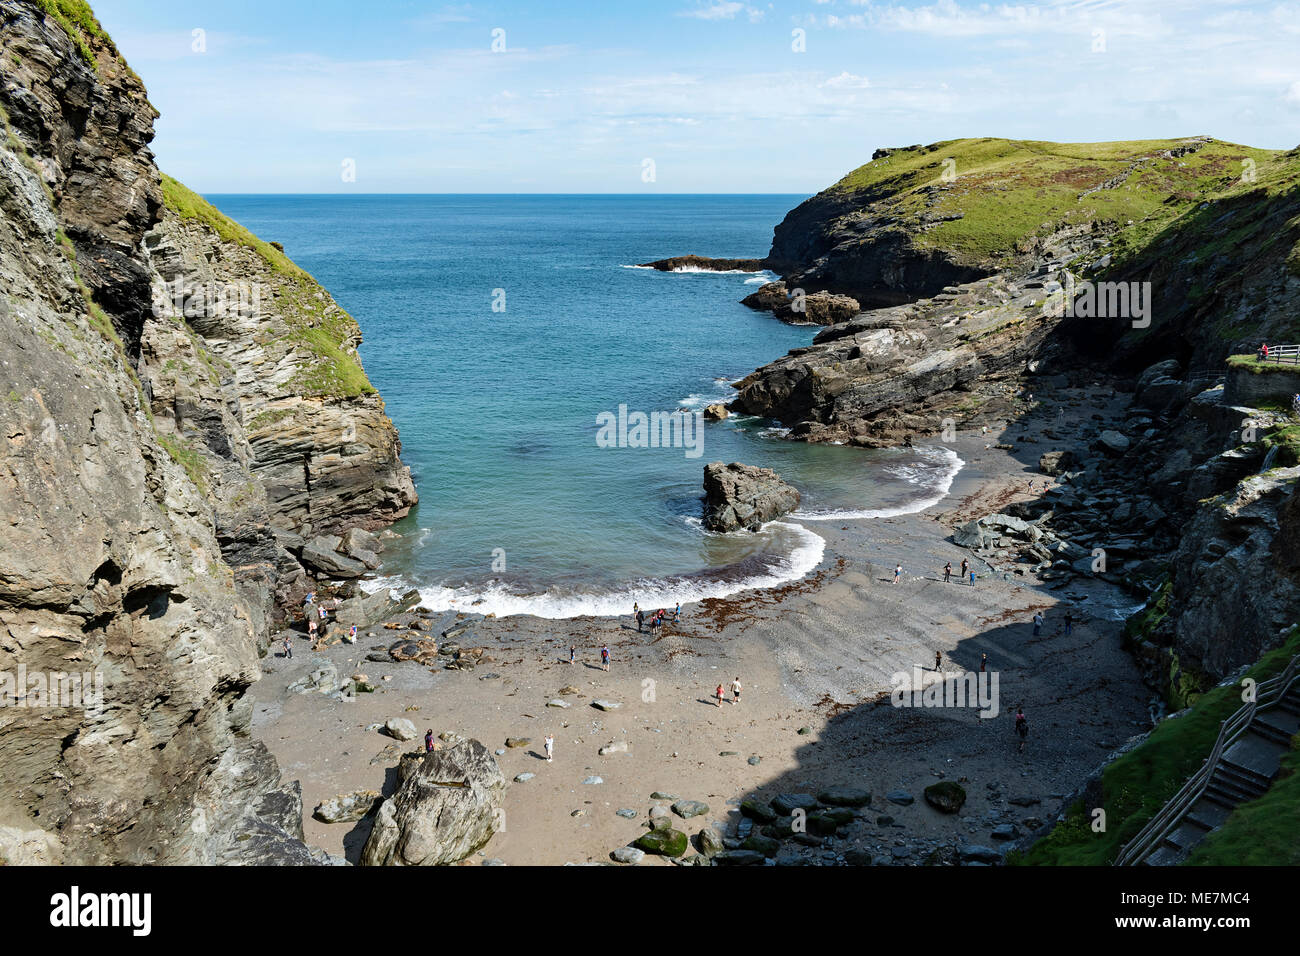 merlins cove at tintagel in north cornwall, england, britain, uk. - Stock Image